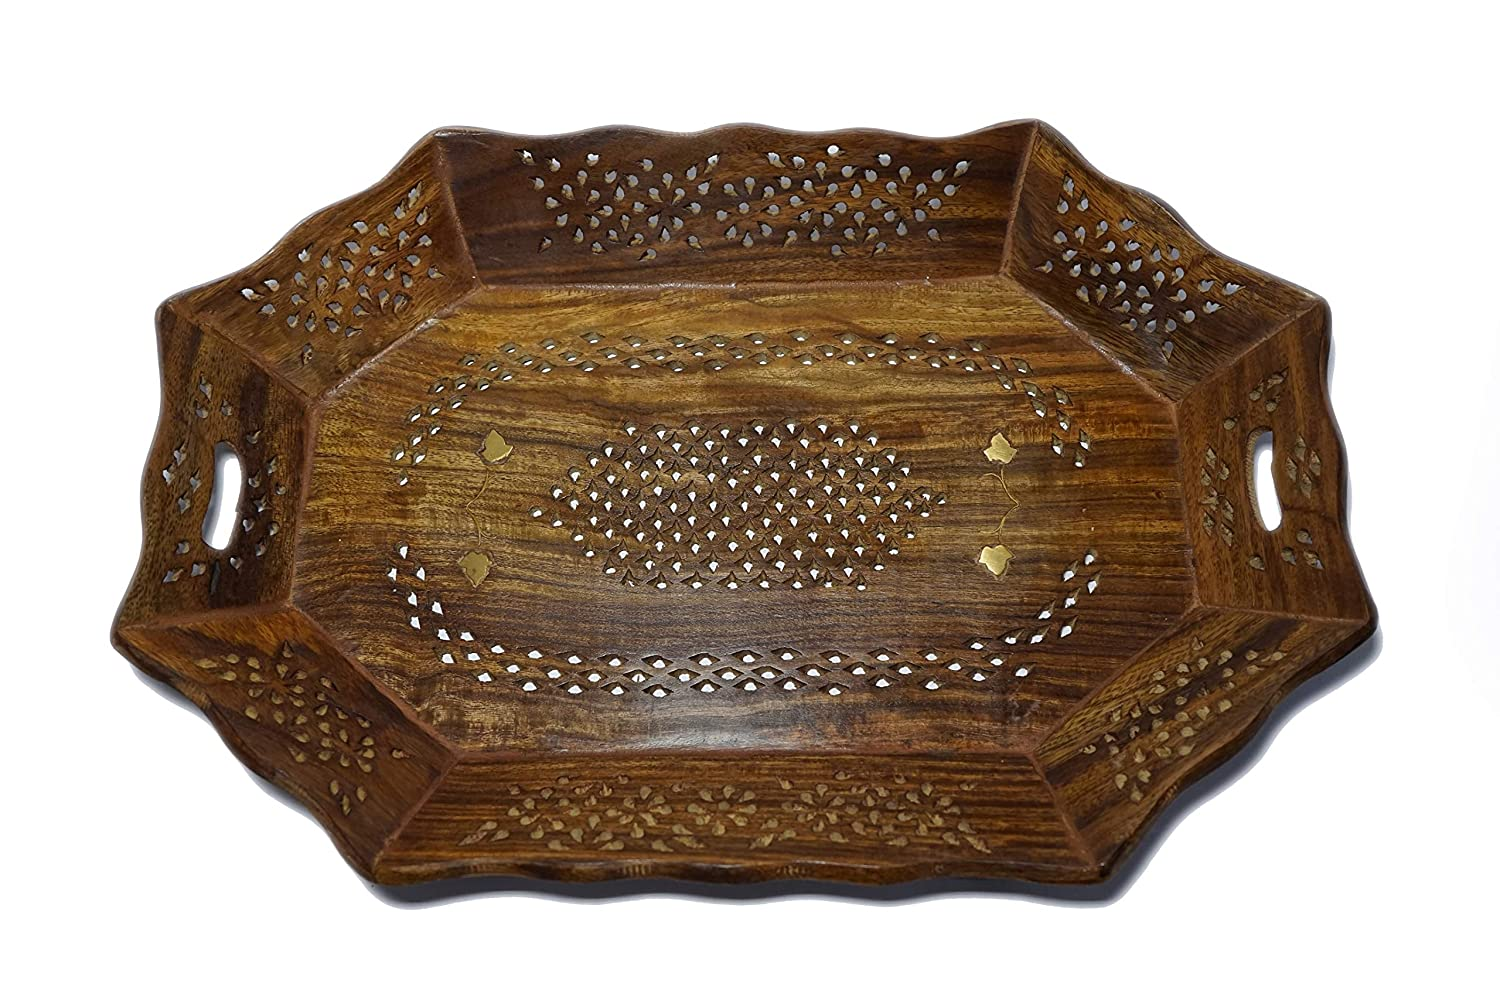 Yeski Serving Tray (Tea, Coffee, Snacks, Water) Decorative Tray/Platter for Home/Kitchen/Table Decor